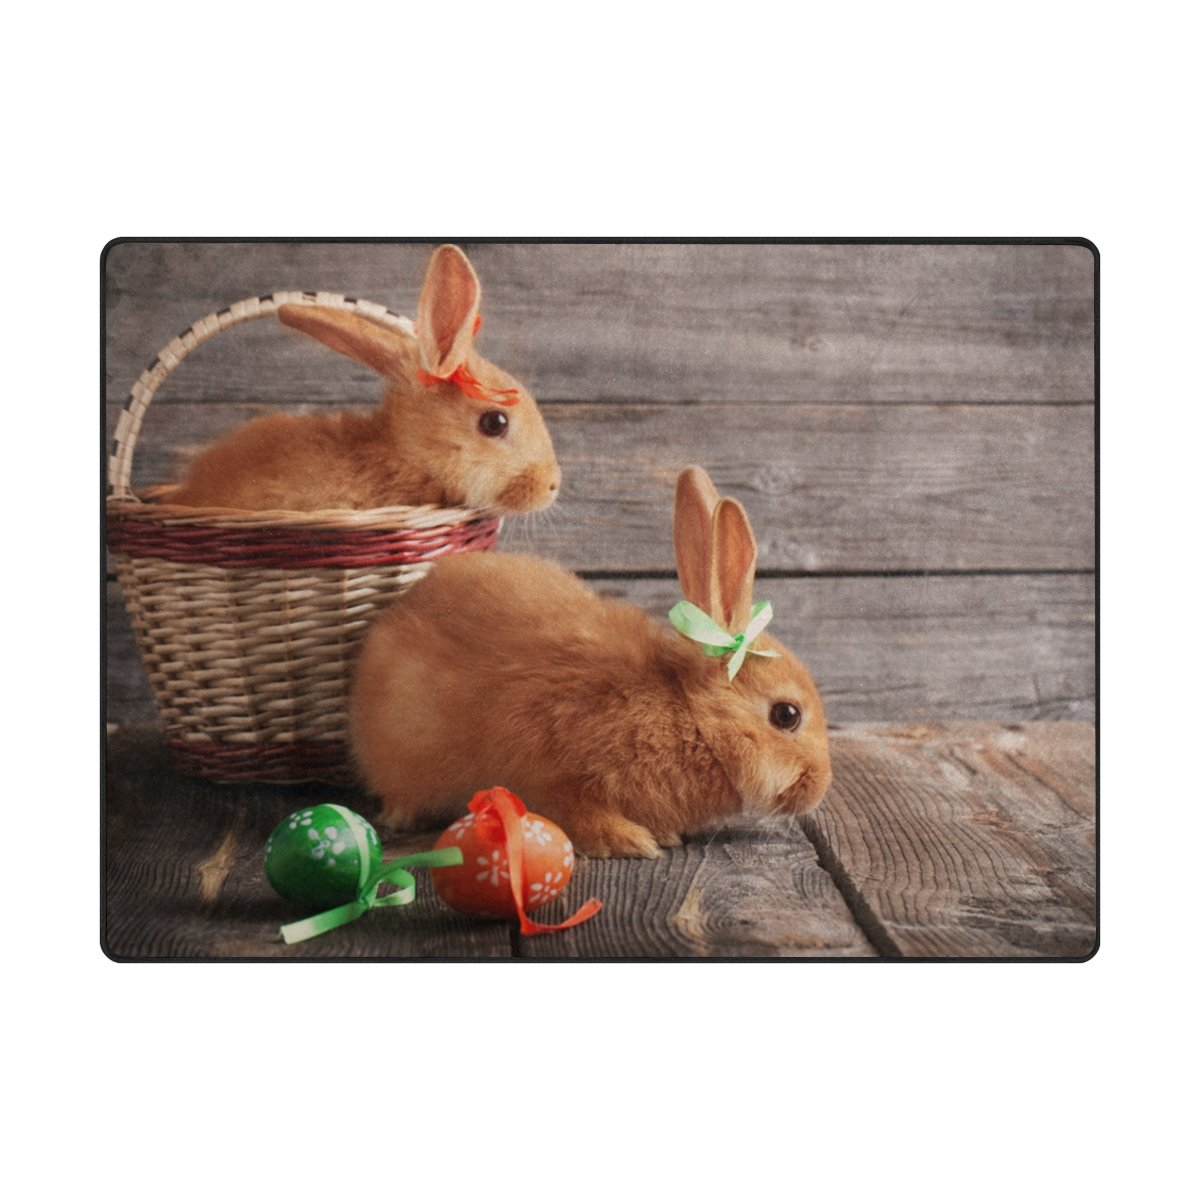 Vantaso Area Rugs Easter Egg And Bunny On Wood Board Non Slip Play Mats for Kids Bedroom Boys Girls Playing Room Living Room 80x58 inch